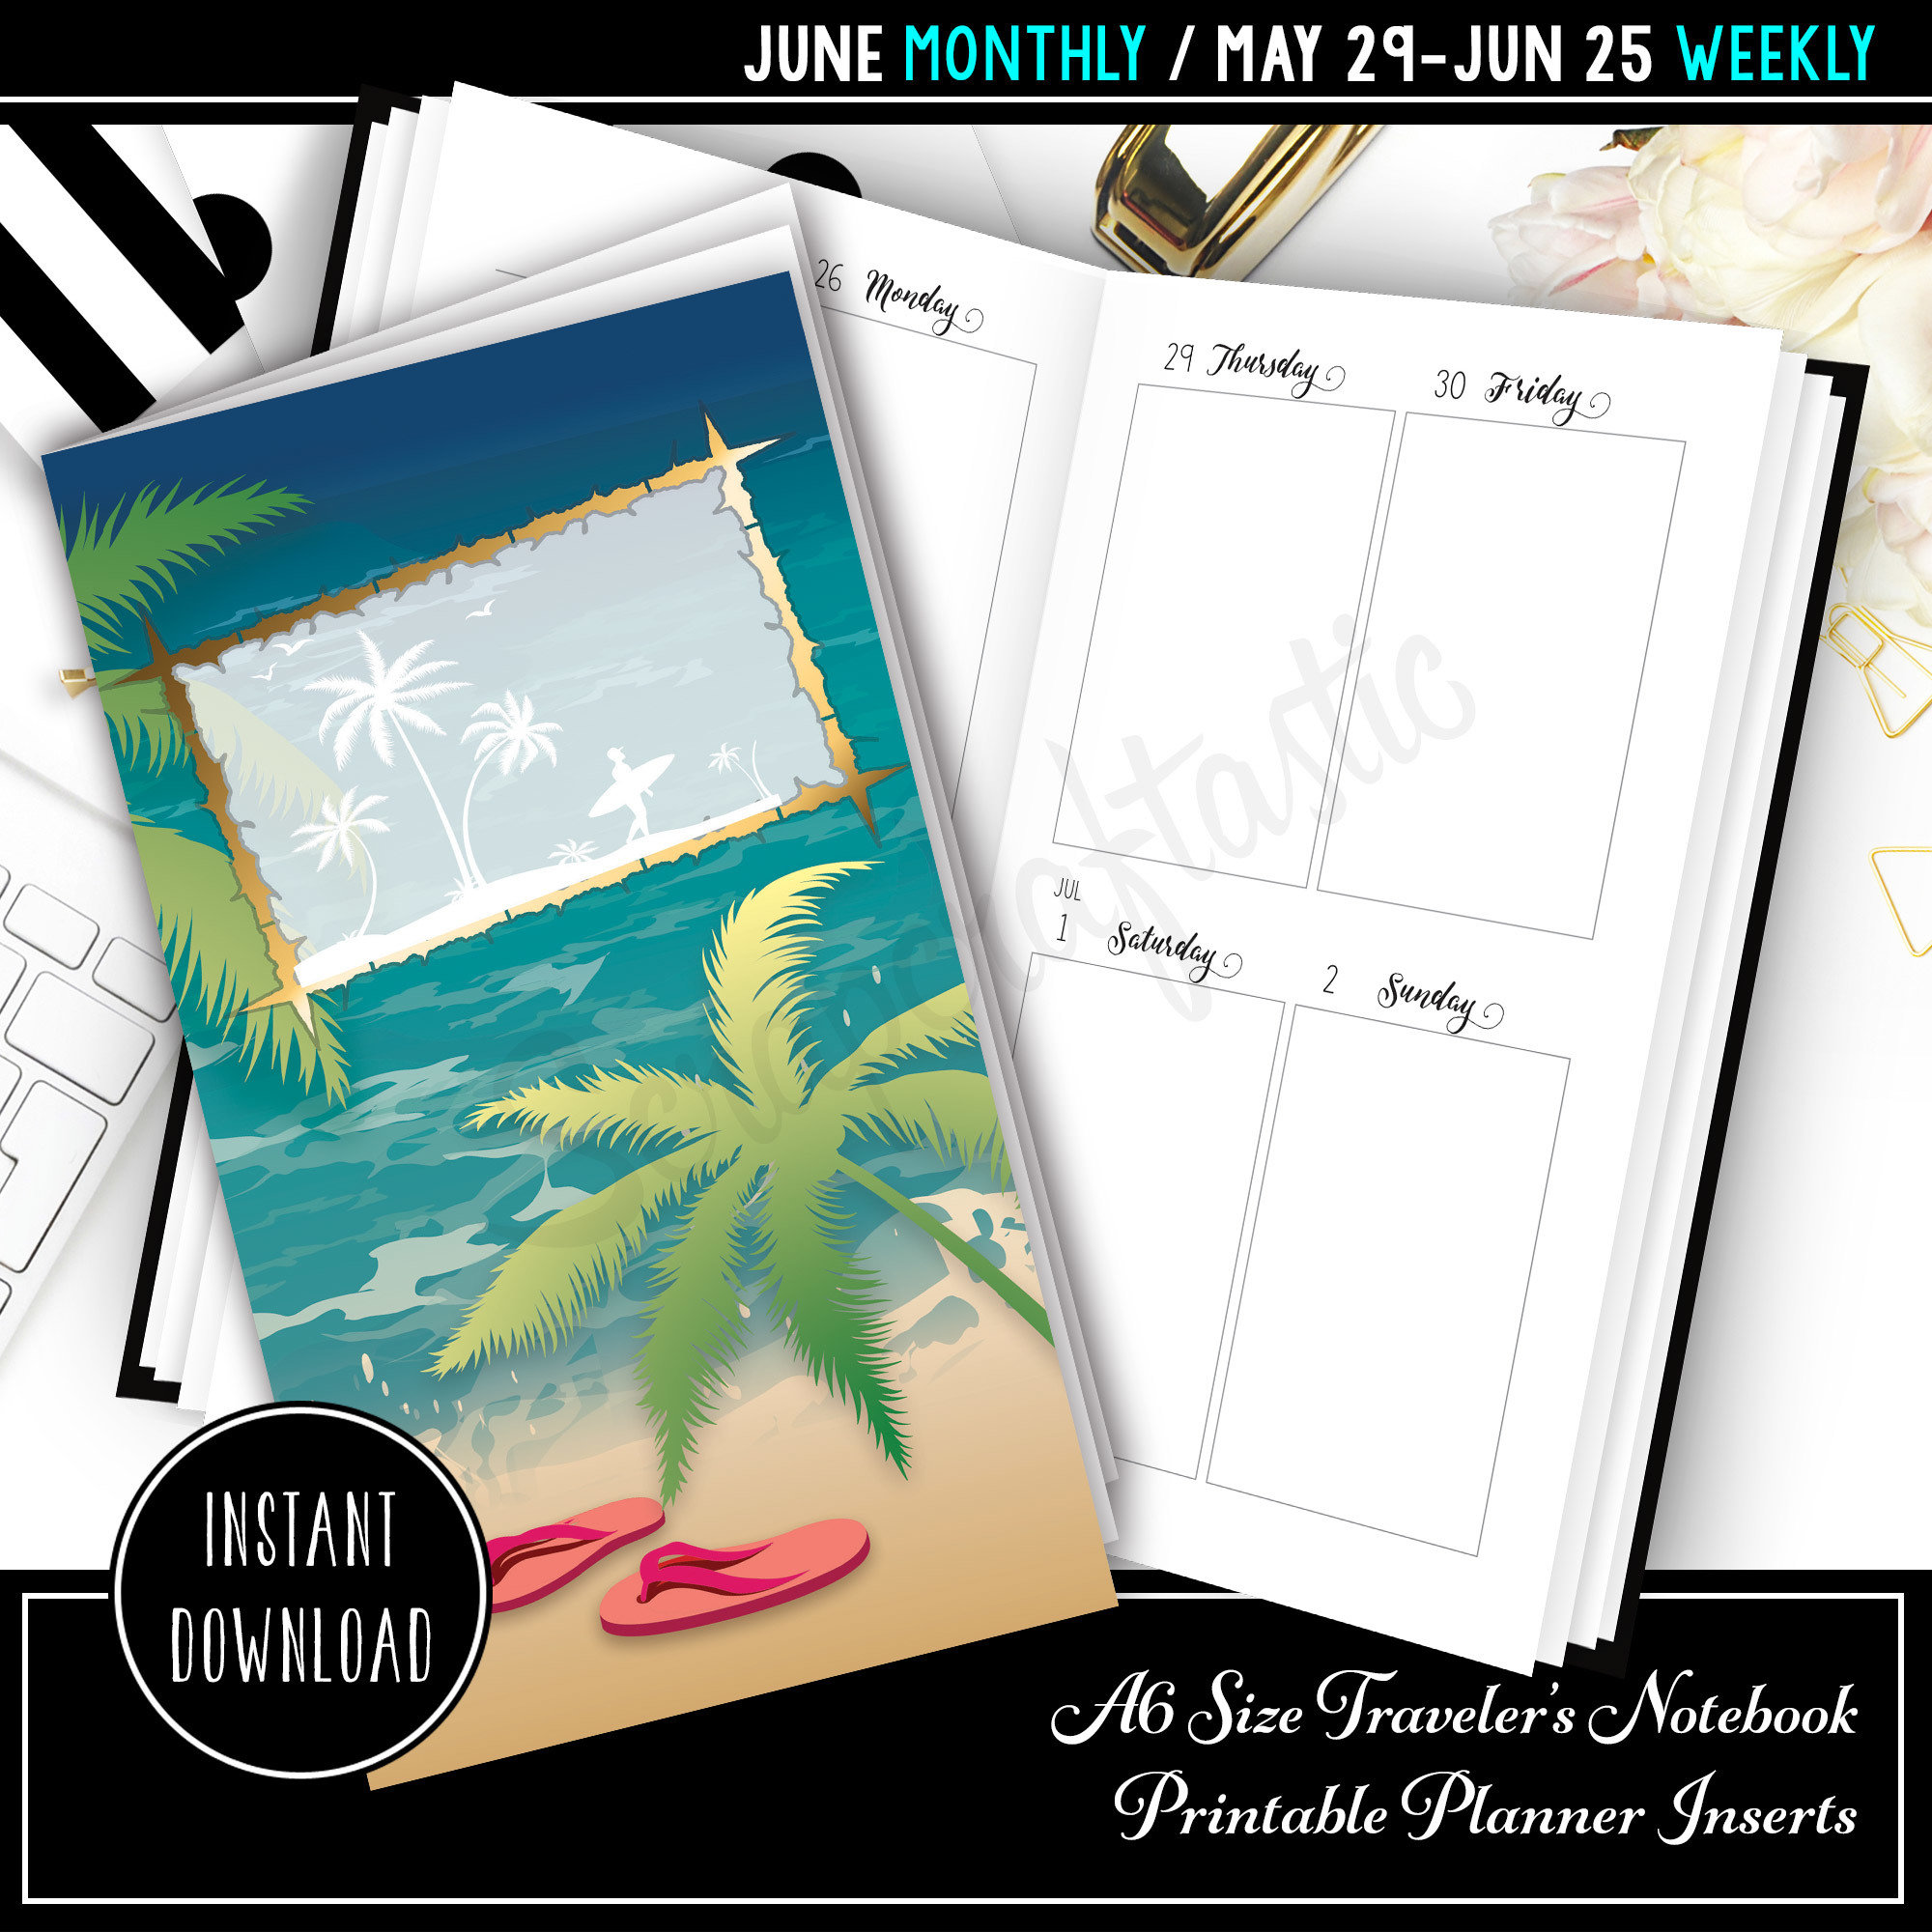 June 2017 A6 Traveler's Notebook Printable Planner Inserts 30006